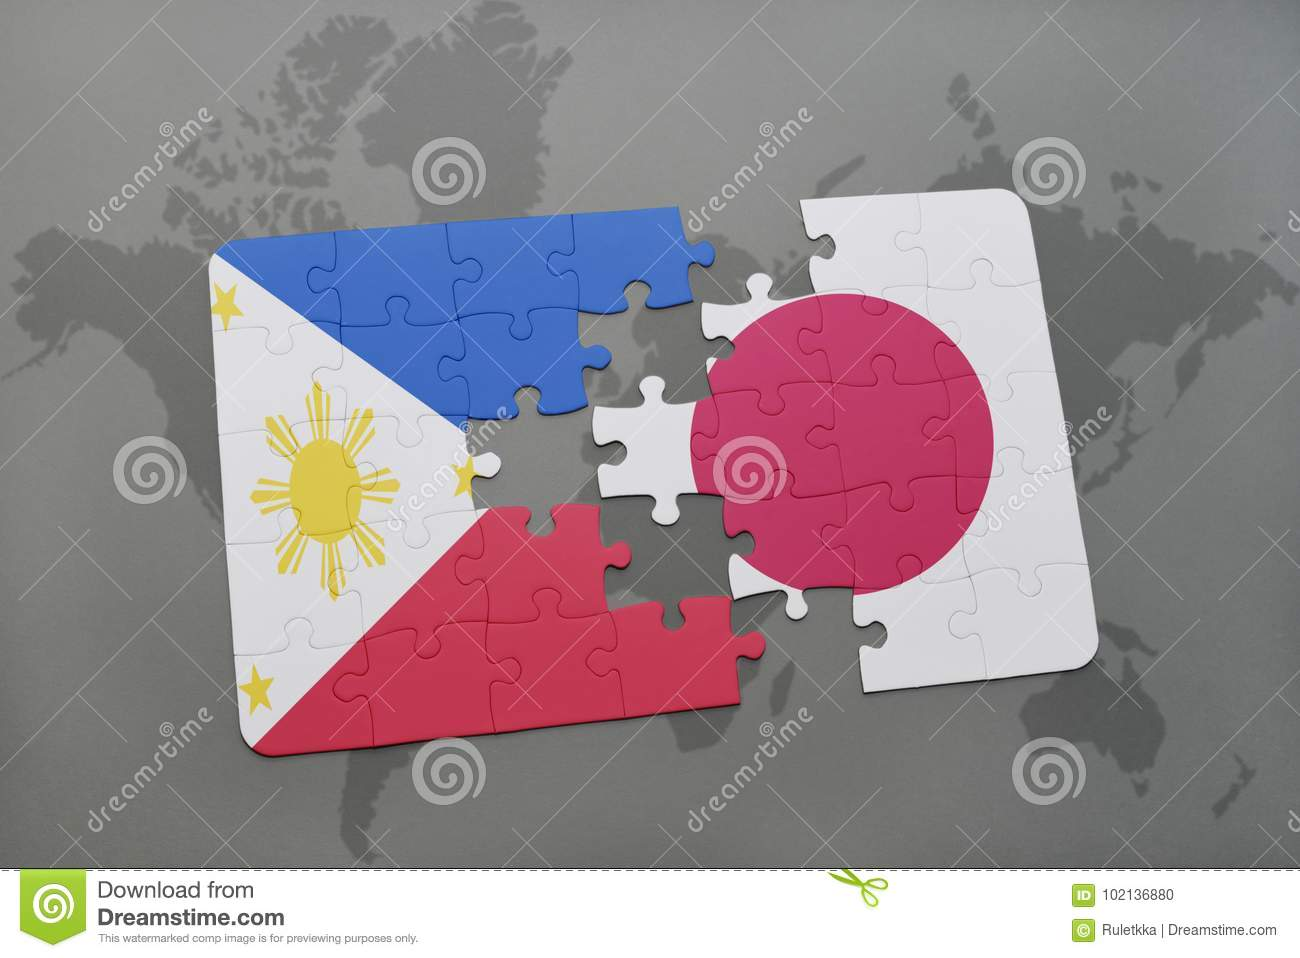 Puzzle with the national flag of philippines and japan on a world download puzzle with the national flag of philippines and japan on a world map background gumiabroncs Choice Image